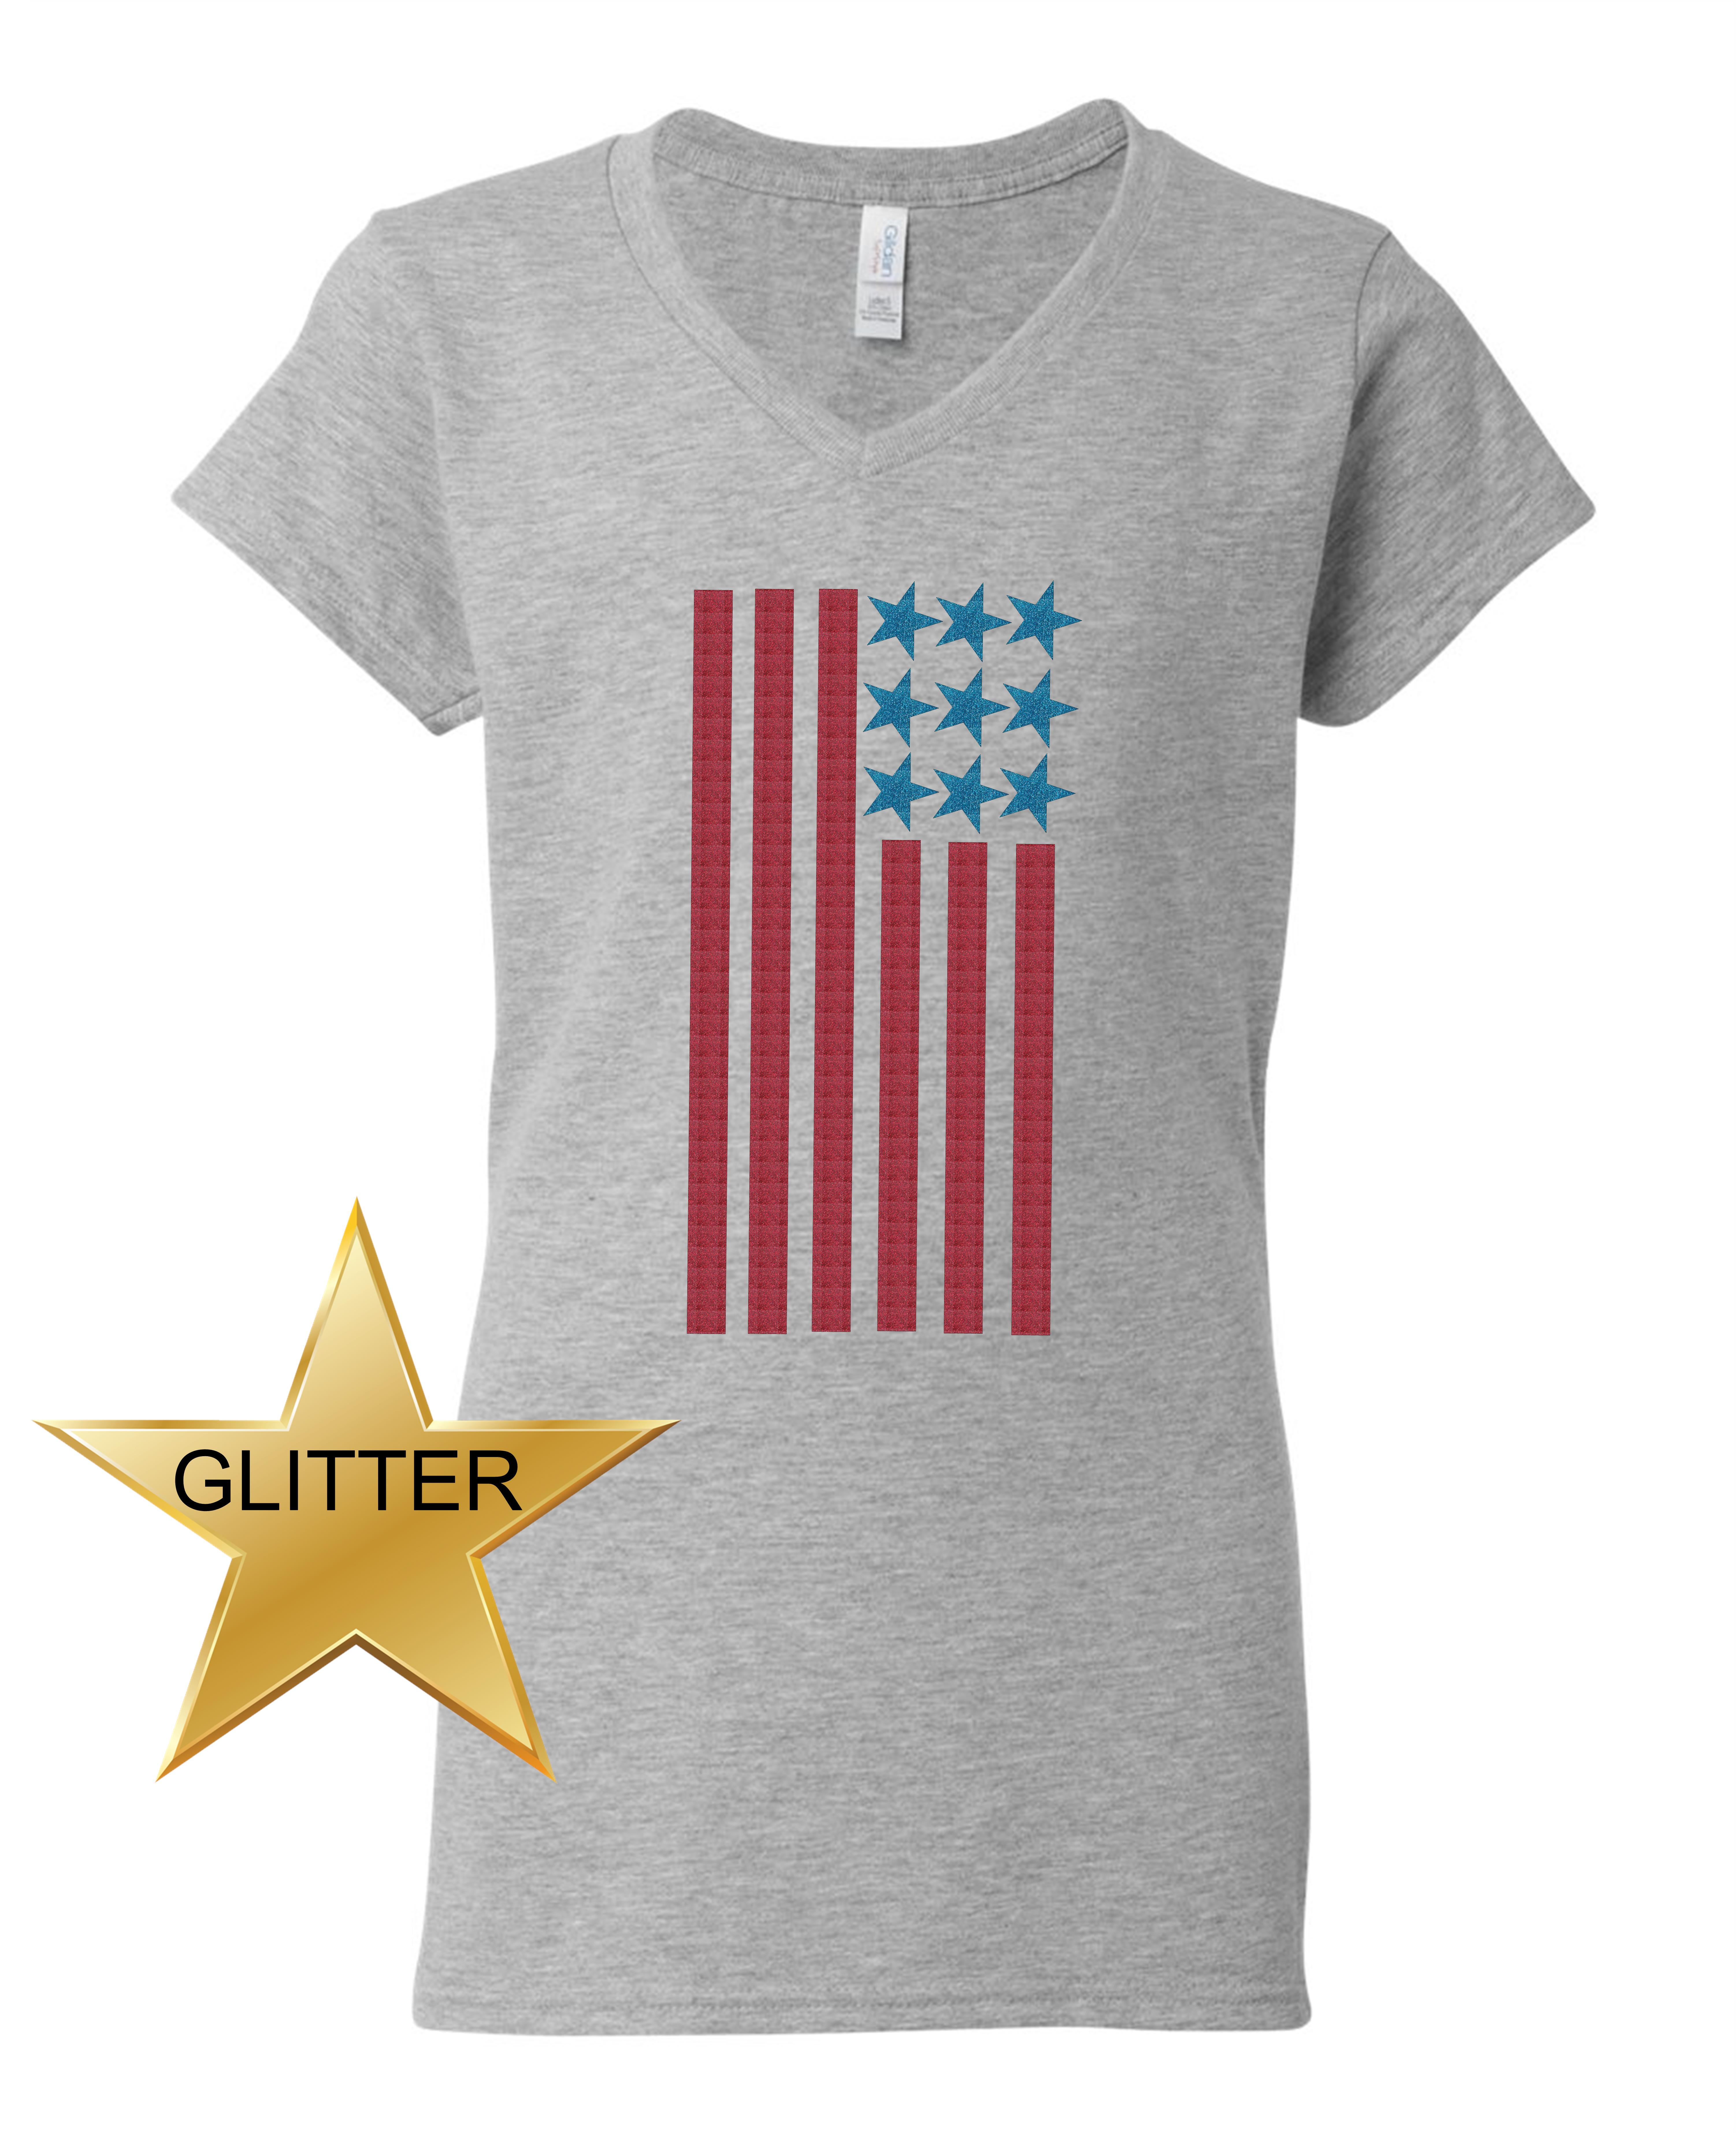 Custom Apparel R Us - American Flag Glitter 4th of July Patriotic Clothing  Womens V Neck T-Shirt Top - Walmart.com 99af642307